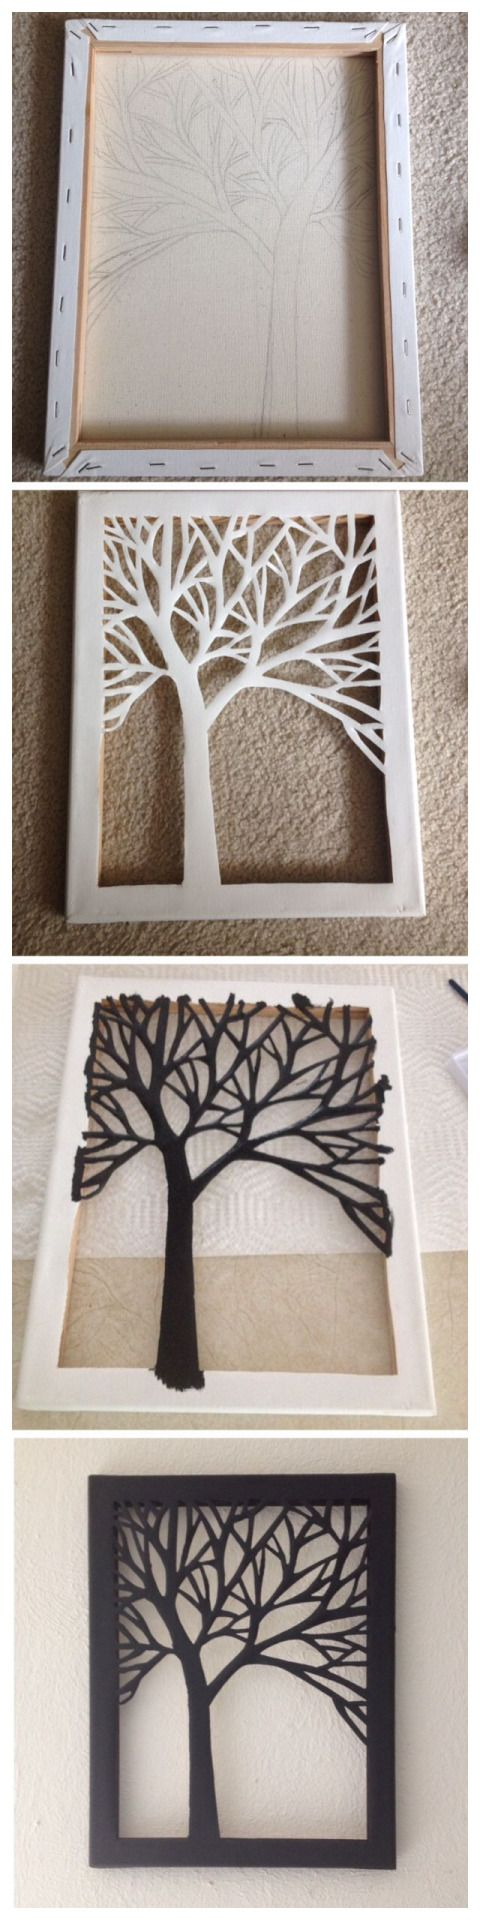 Sillouhette cut-out of a tree on canvas MORE –>> craftsanddiyideas.com